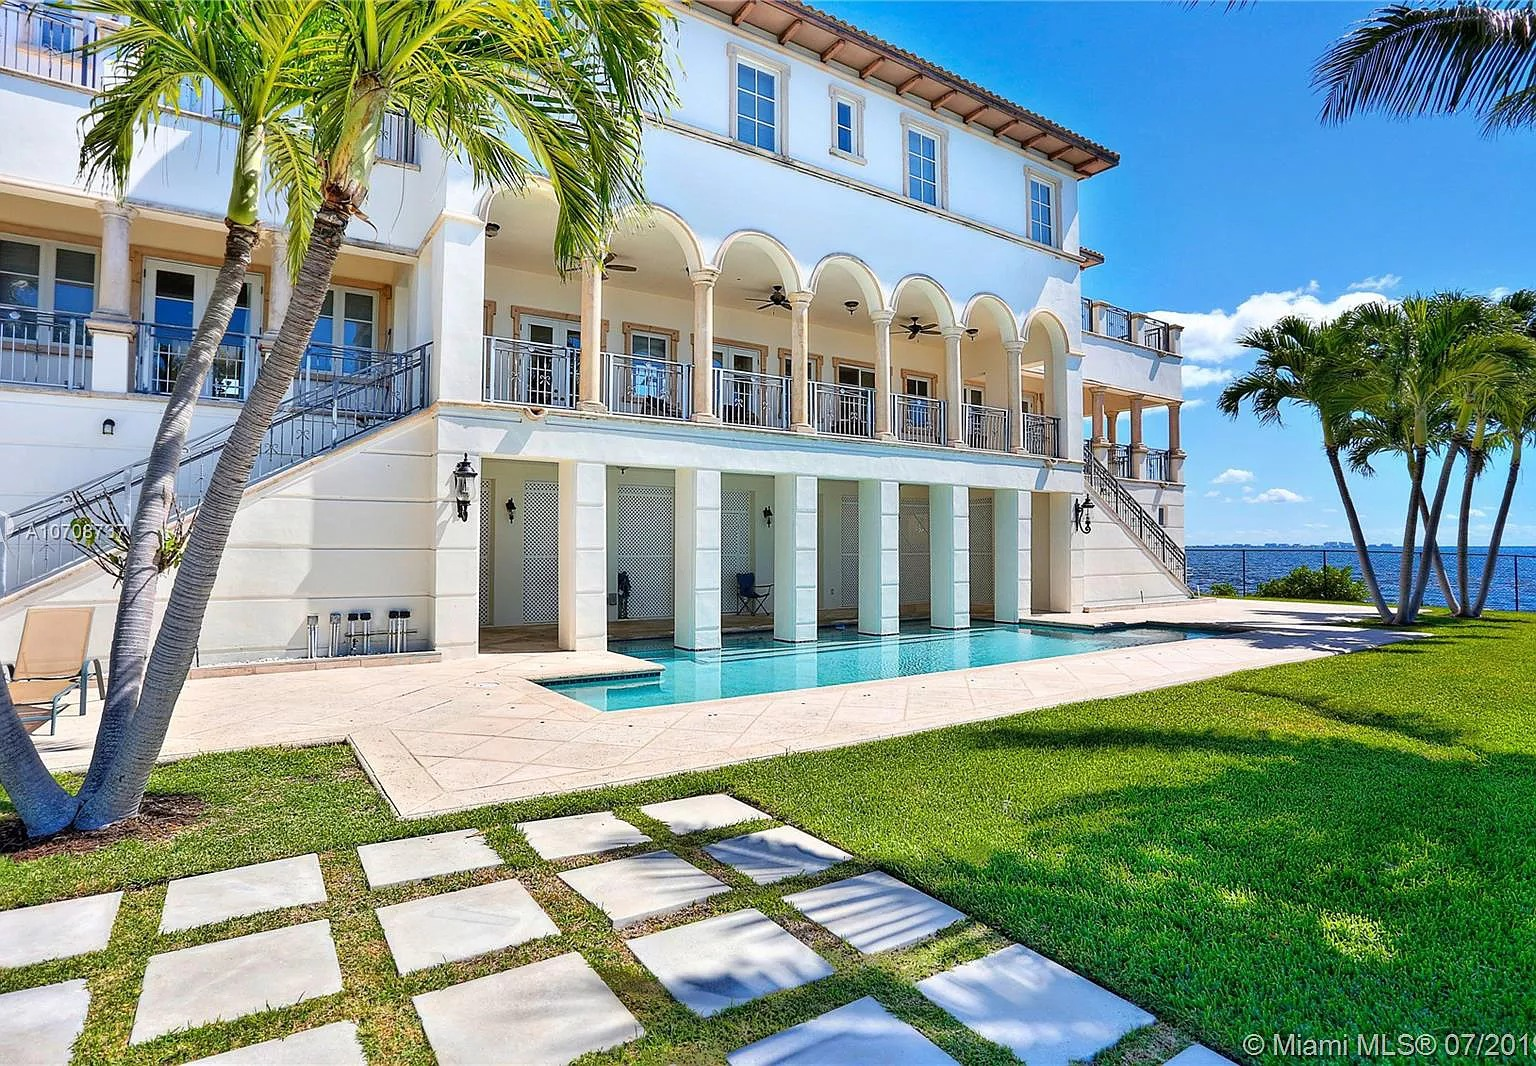 650 Lugo Ave, Coral Gables, FL 33156 - $7,999,000 home for sale, house images, photos and pics gallery